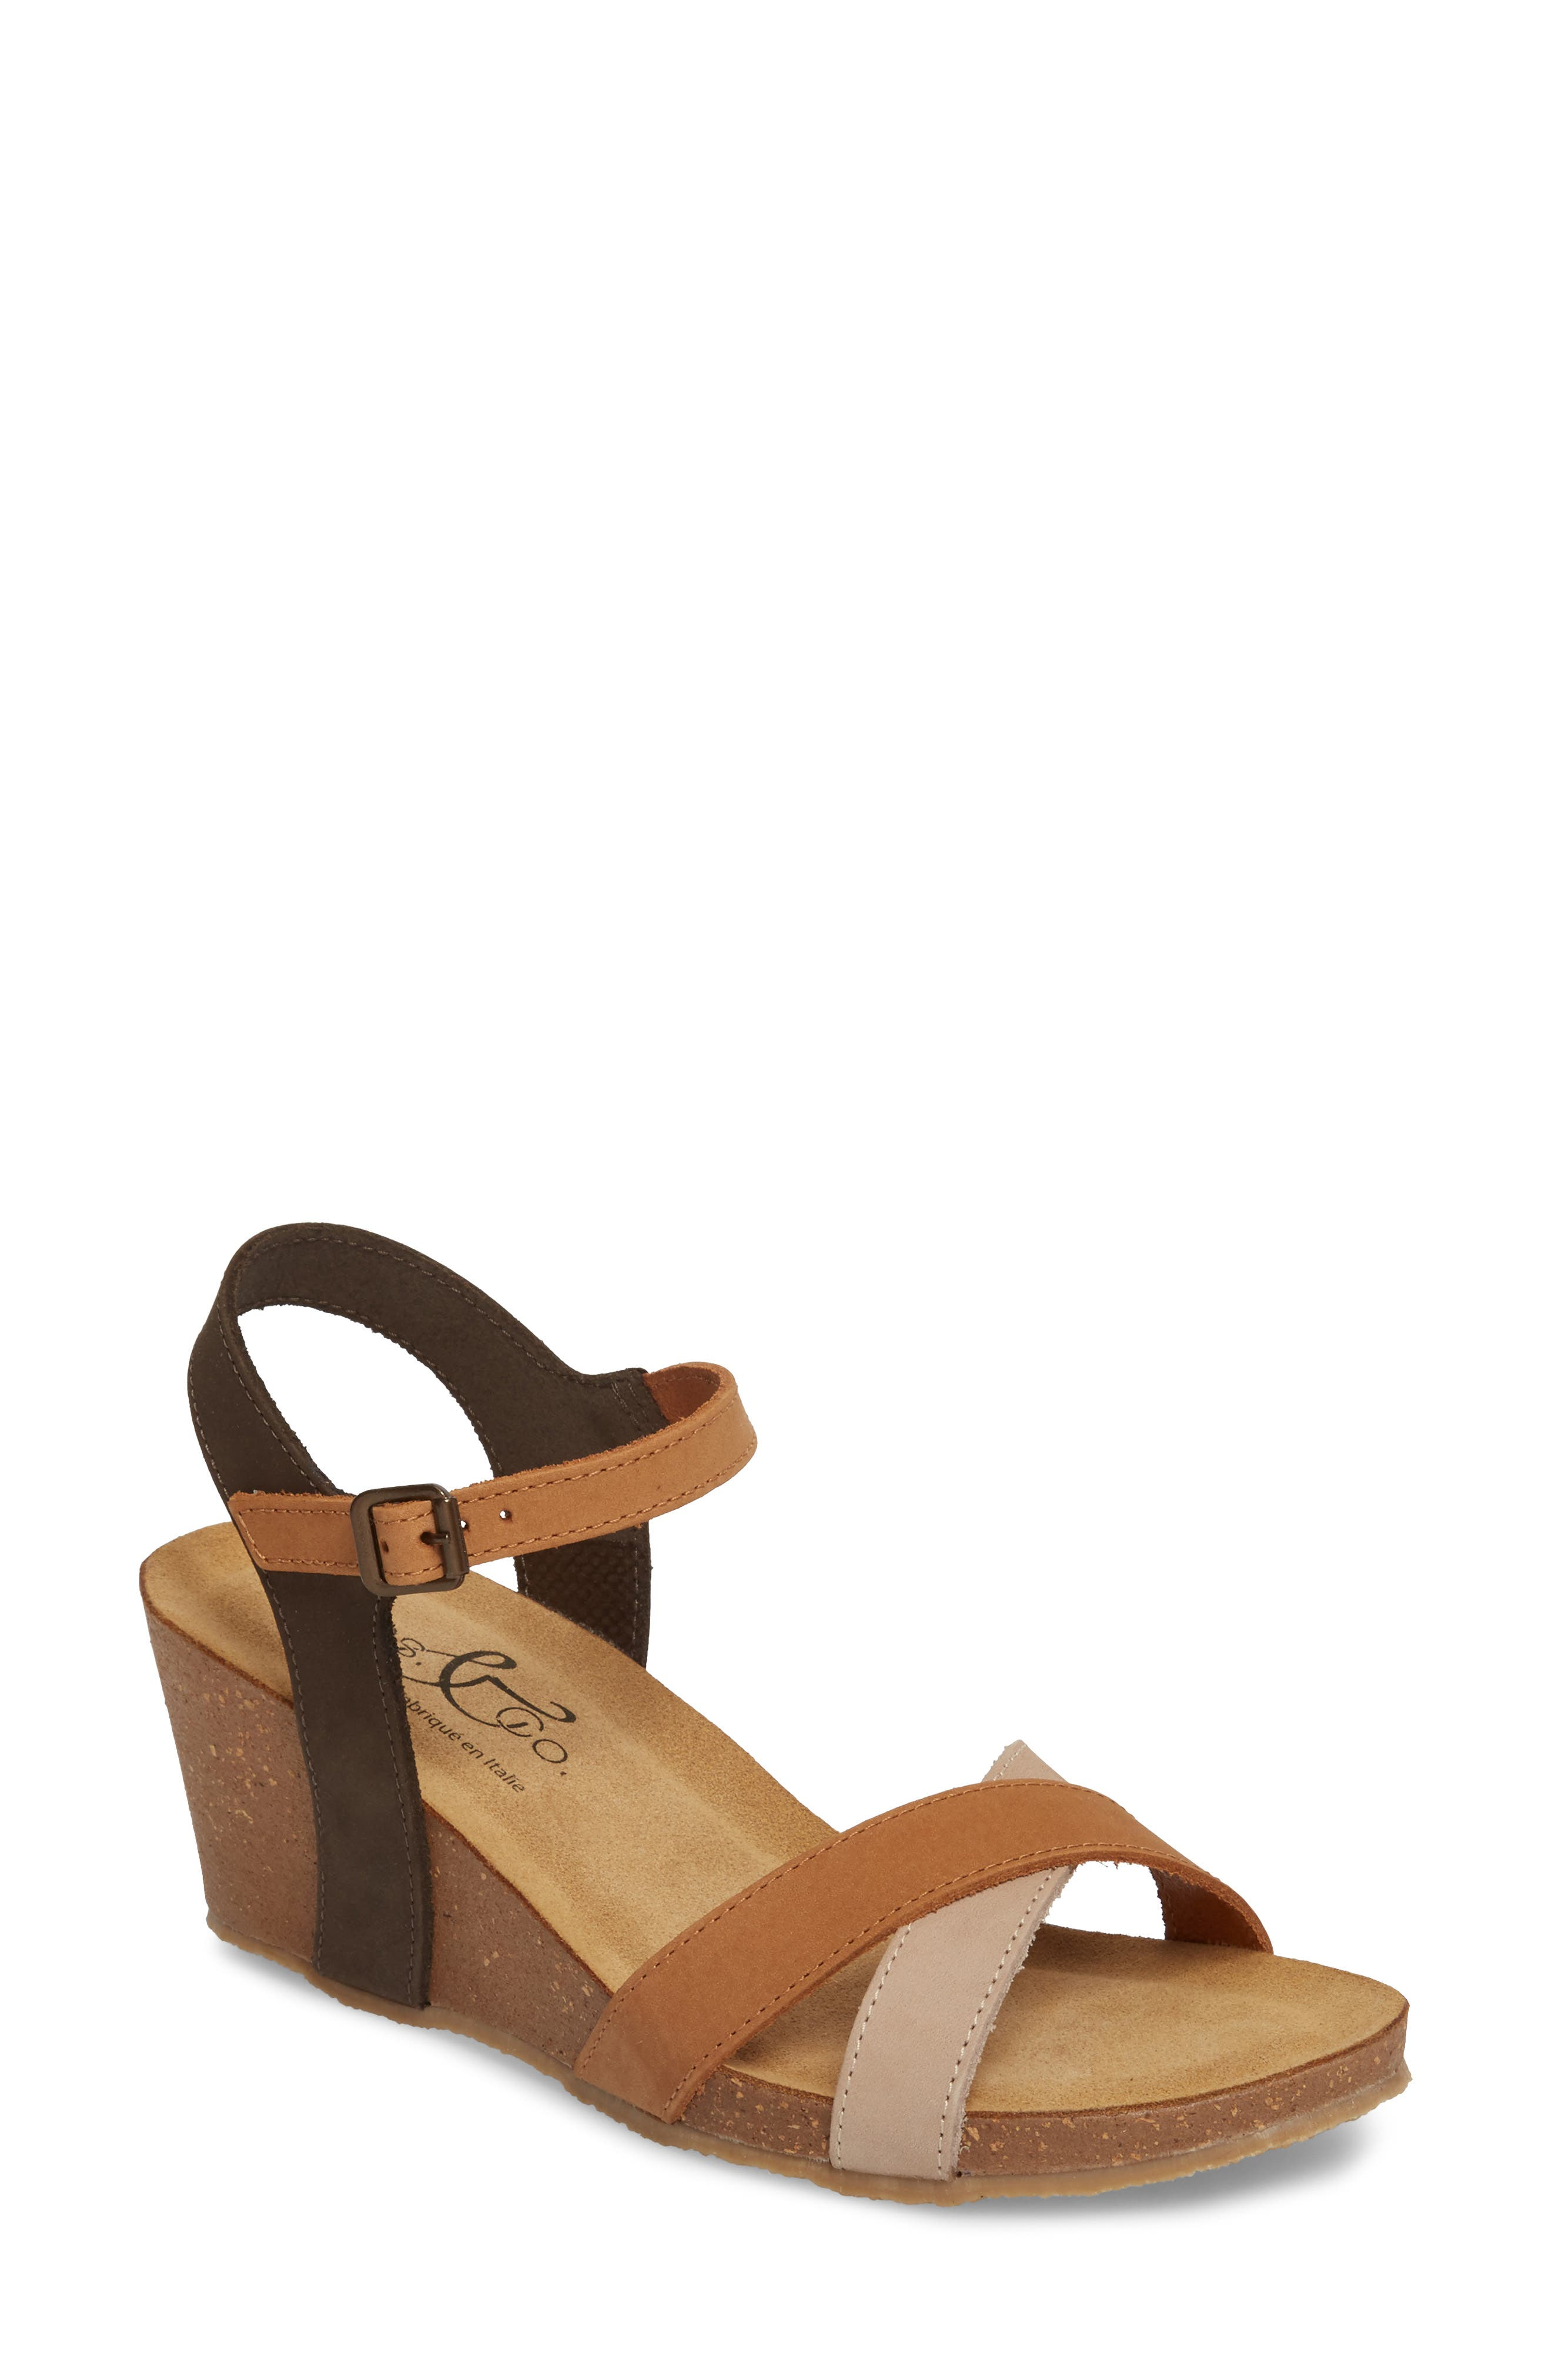 Bos. & Co. Lucca Wedge Sandal - Brown